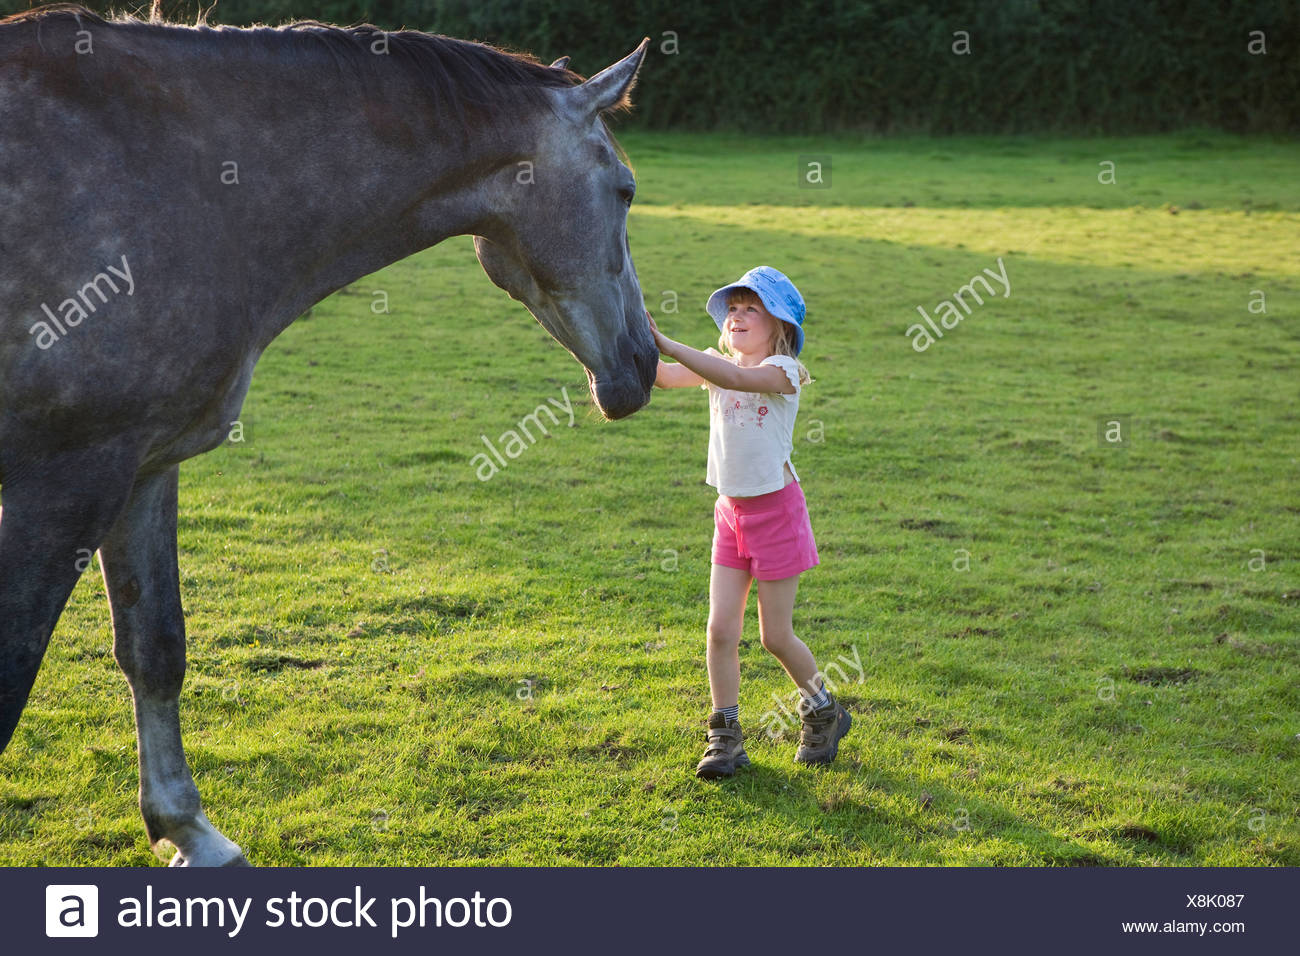 Petting the horse - Stock Image